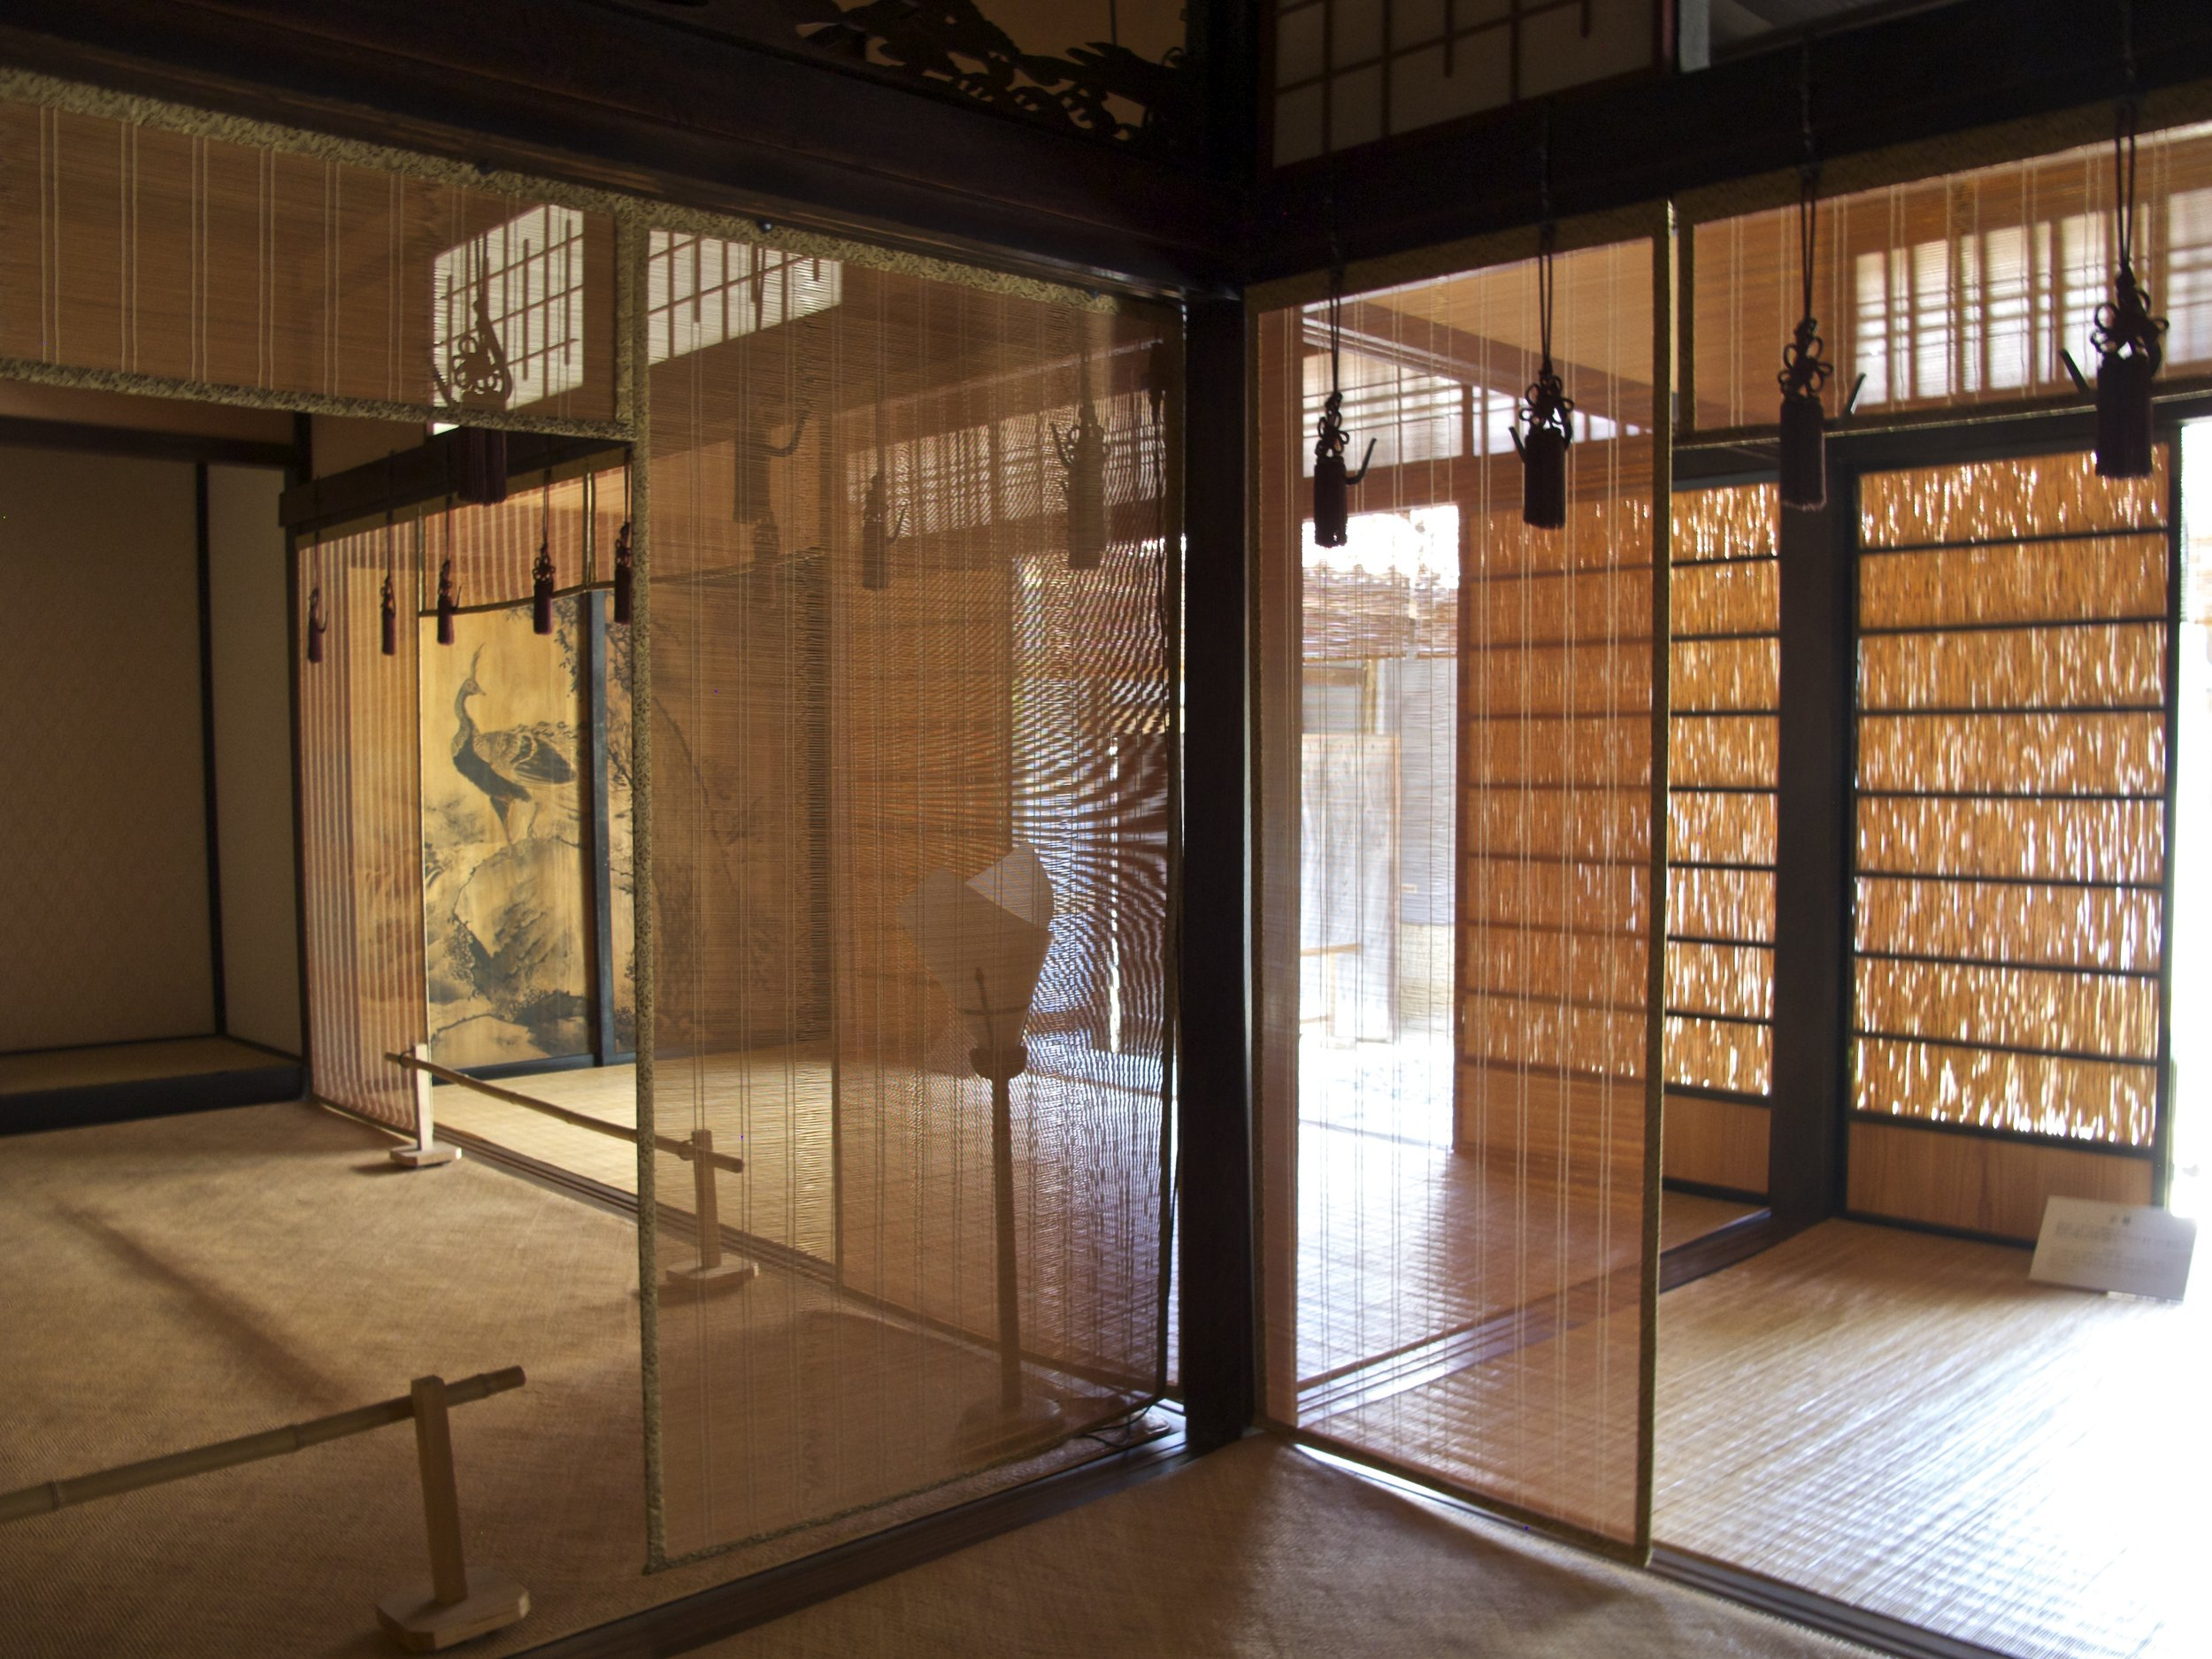 The spaciousness and sumptuousness of the Kumagai residence reflect Omori's prosperity during the silver mine's heyday.